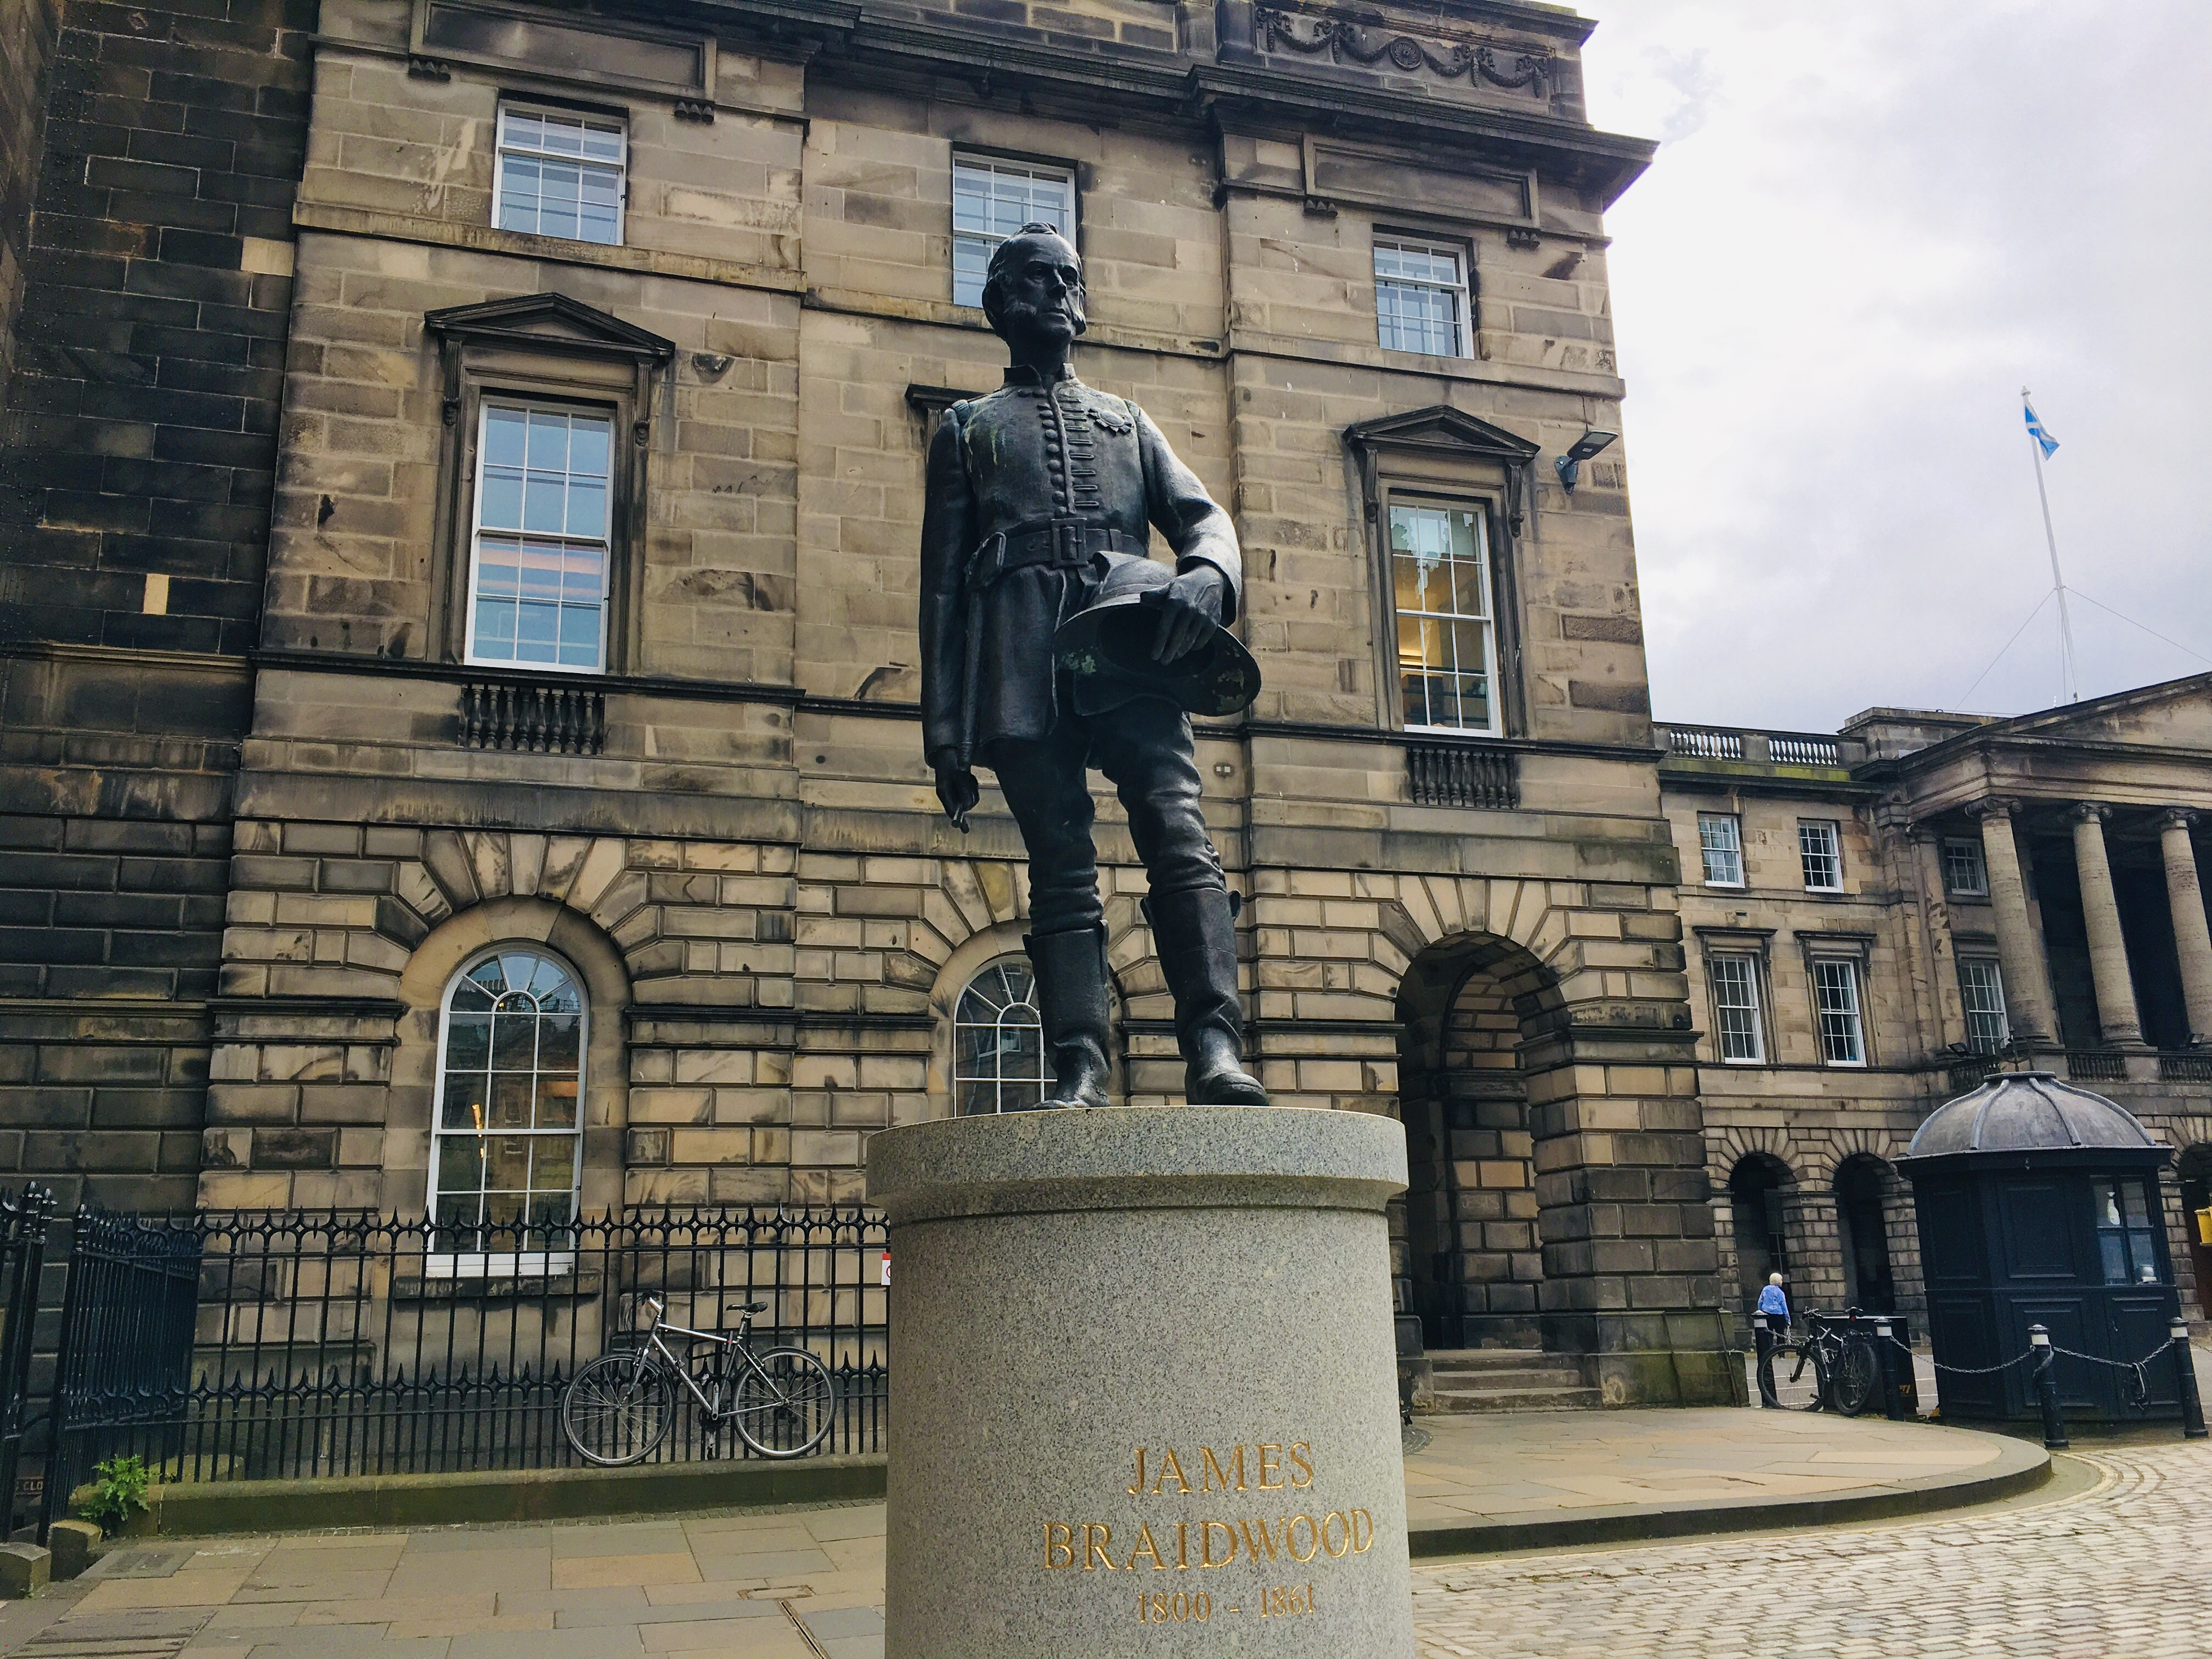 A Fresh Look at Edinburgh's Remarkable Statues